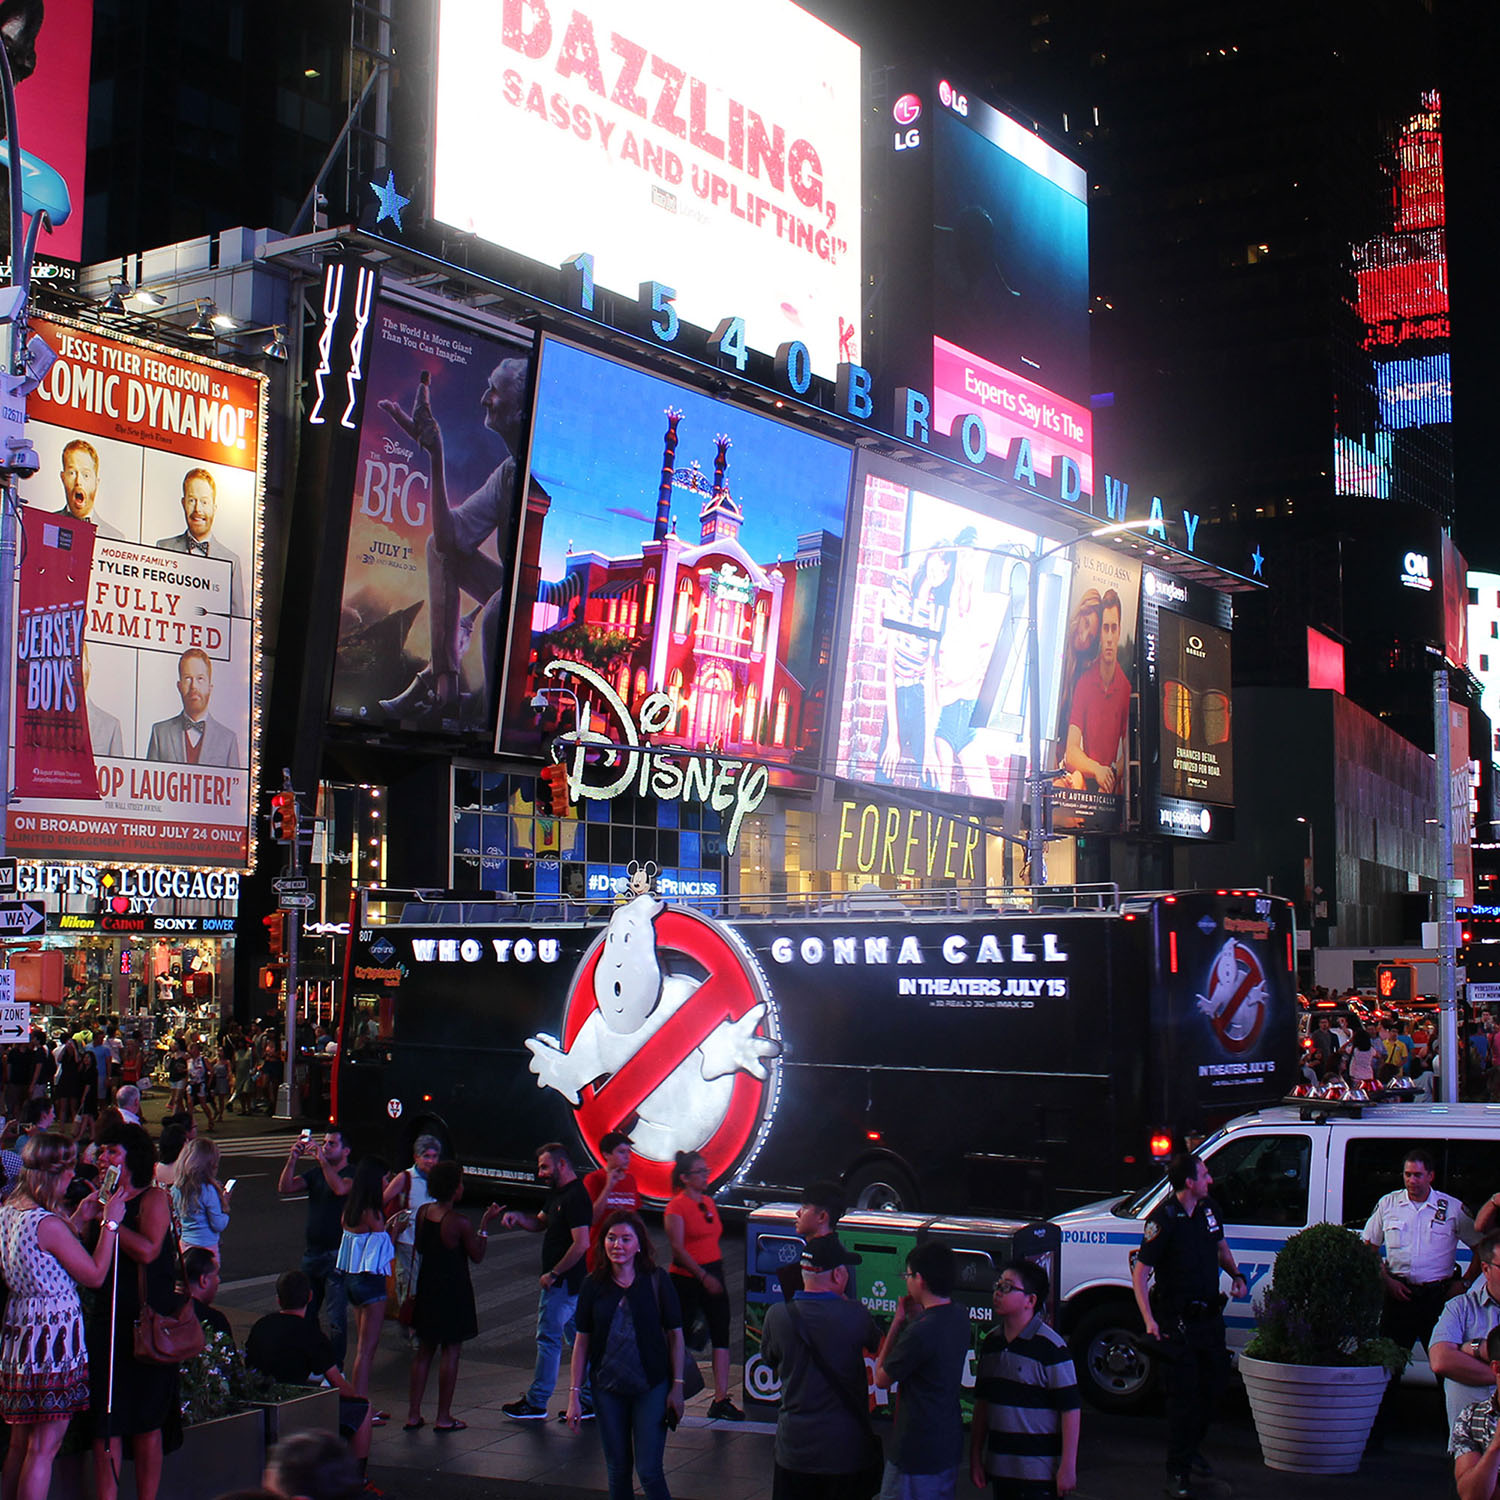 Ghostbusters bus illuminated in Times Square NYC